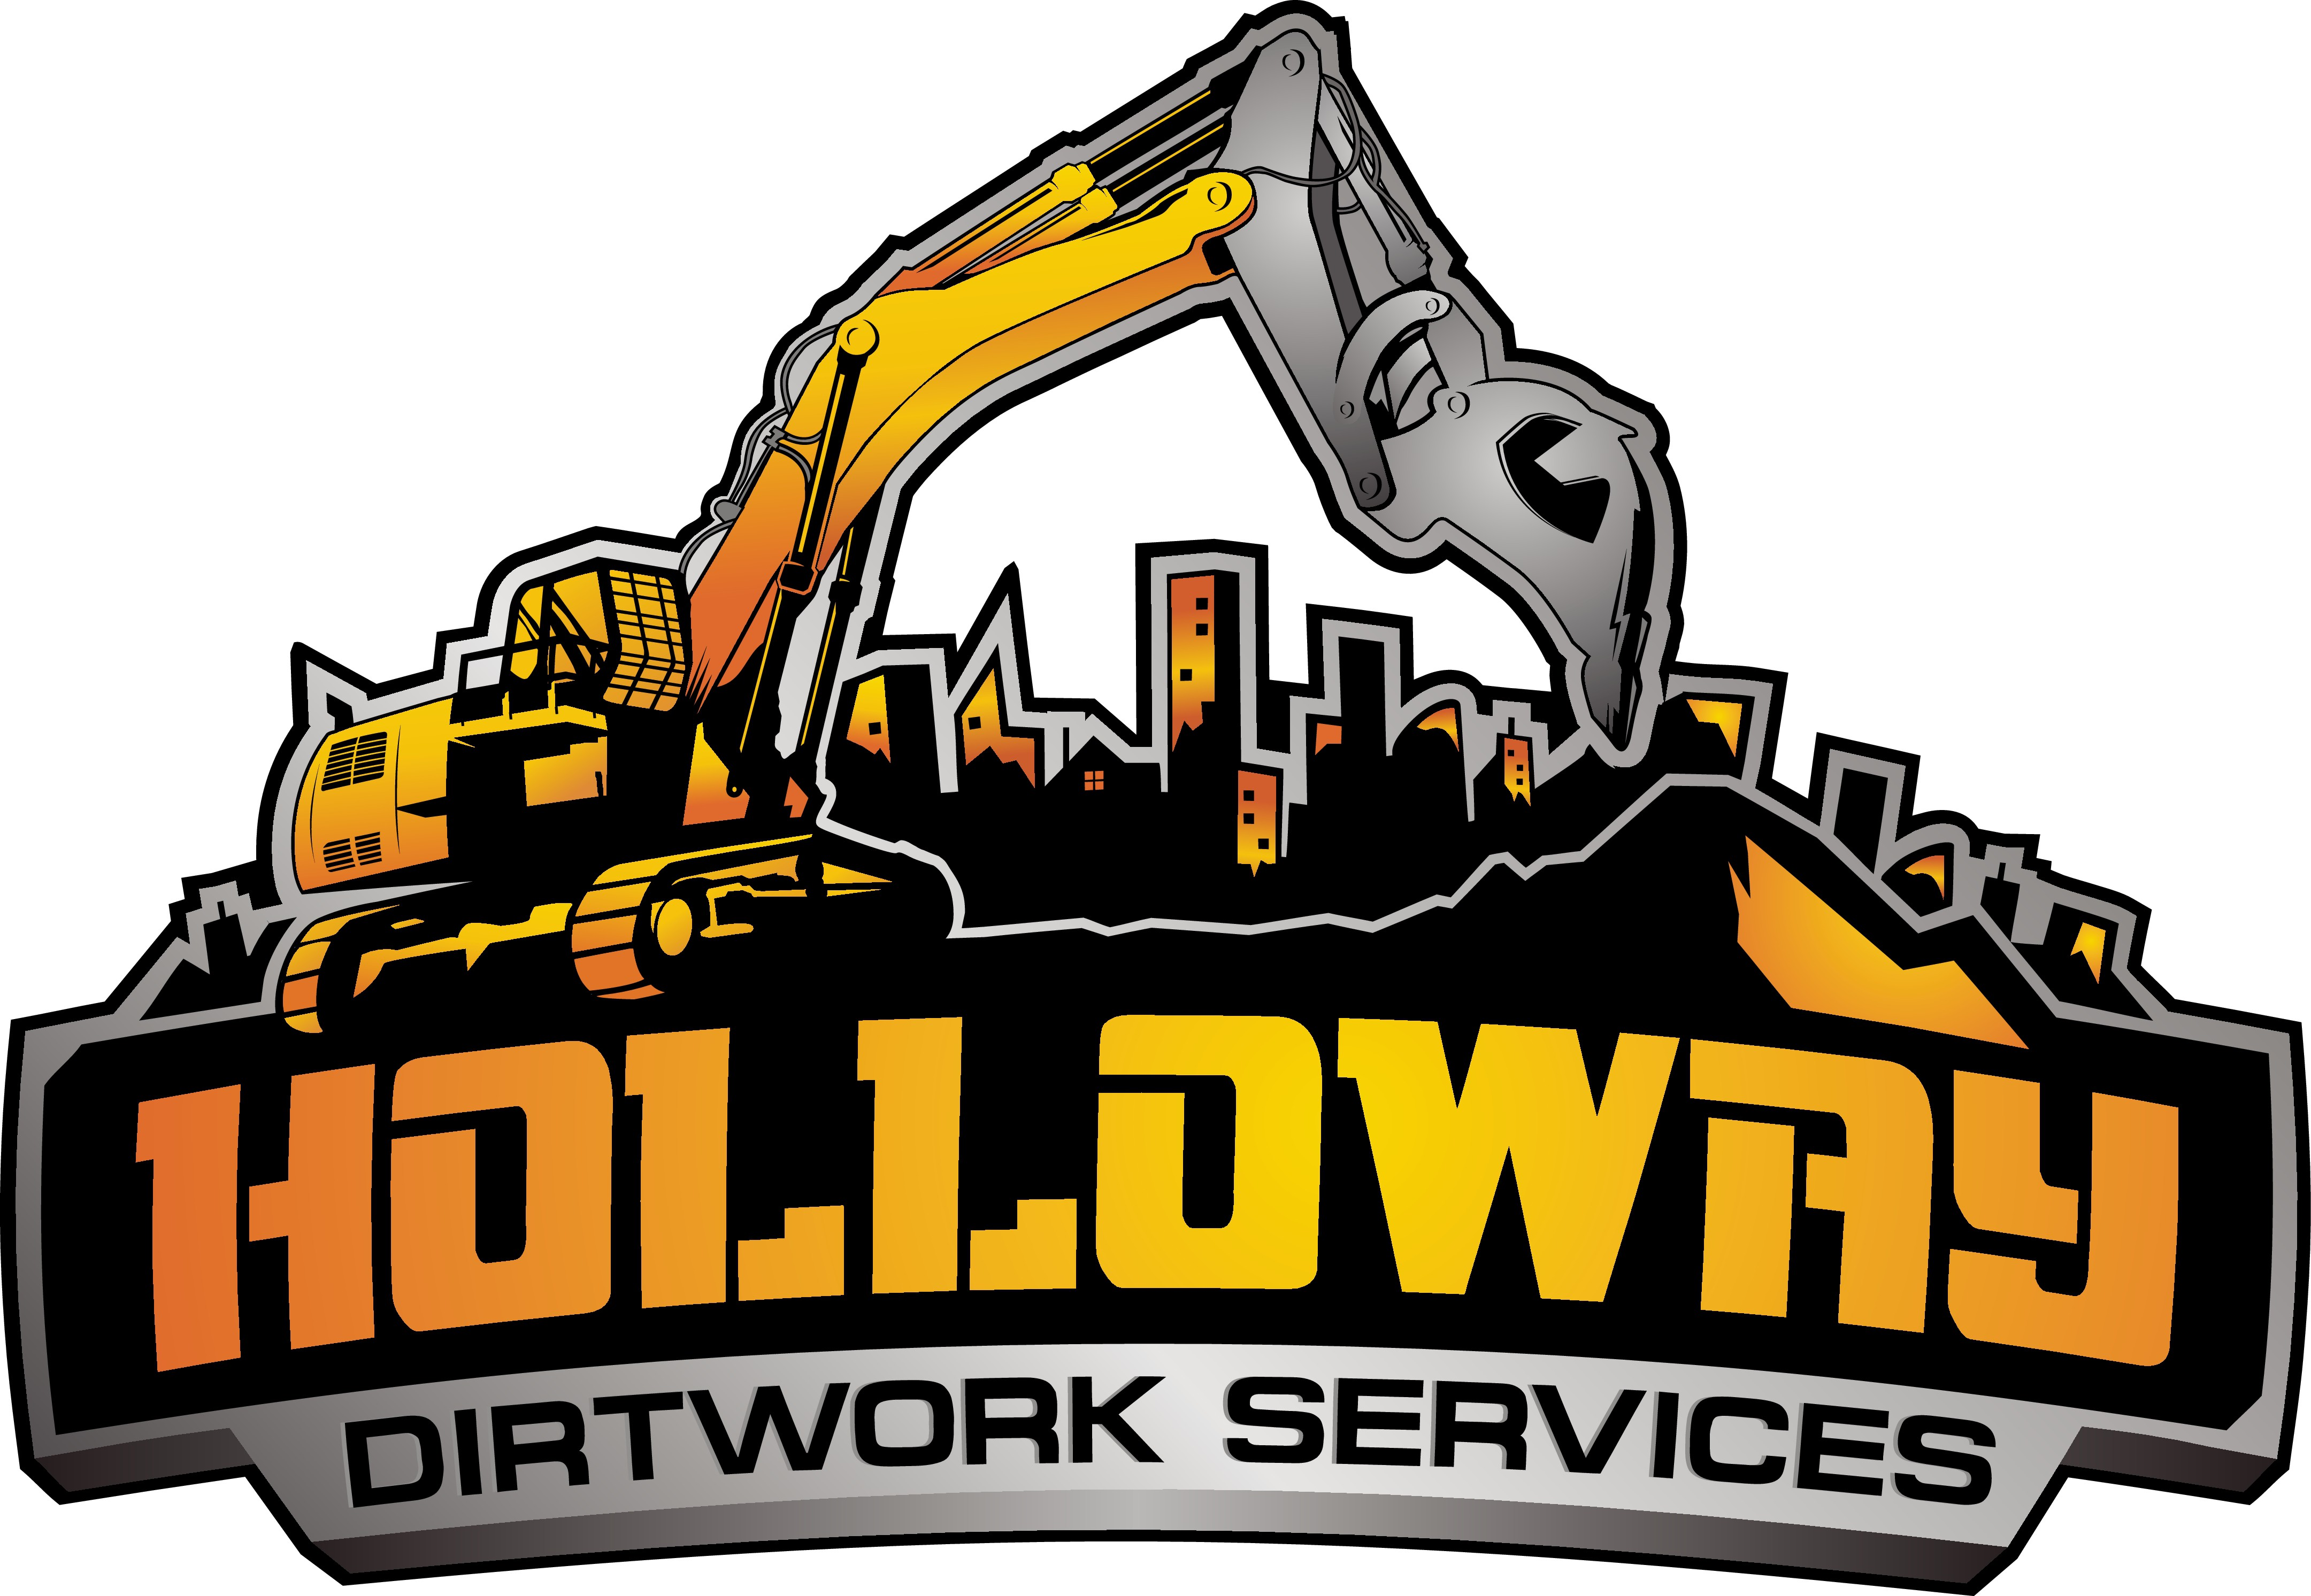 Create a capturing illustration for a rugged Dirtwork company!